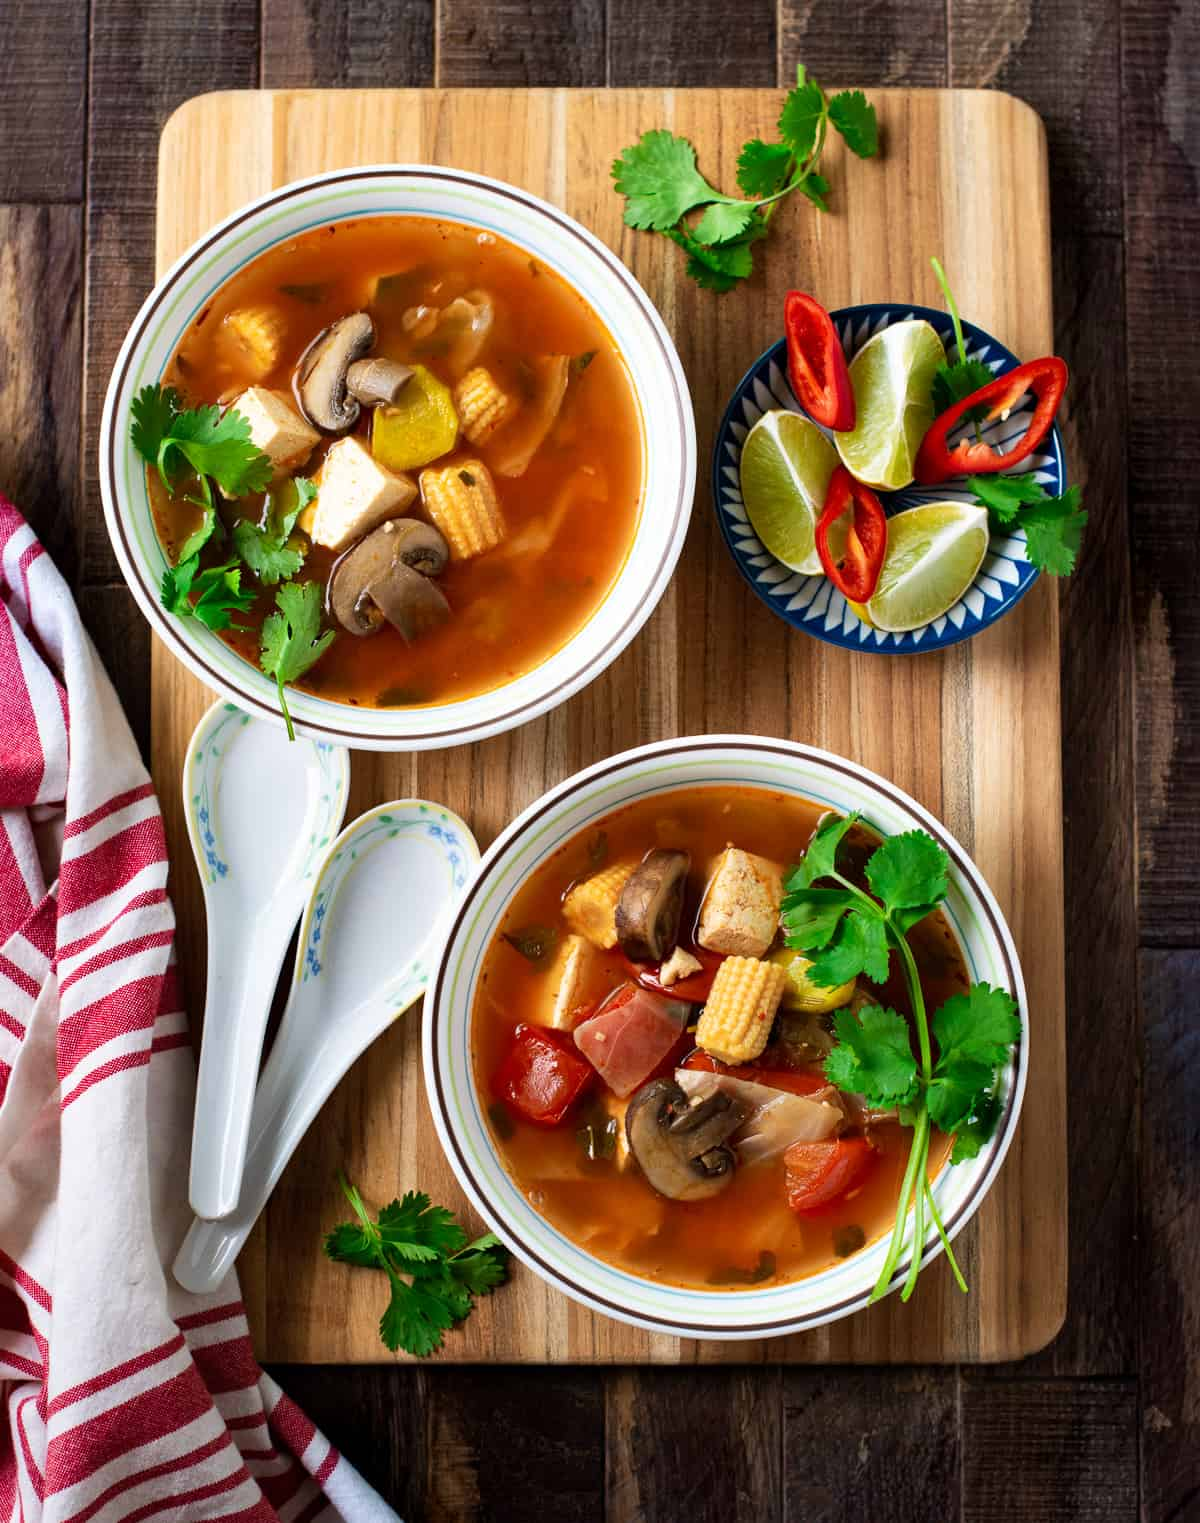 Thai tom yum soup sered in bowls and set on a woodden board